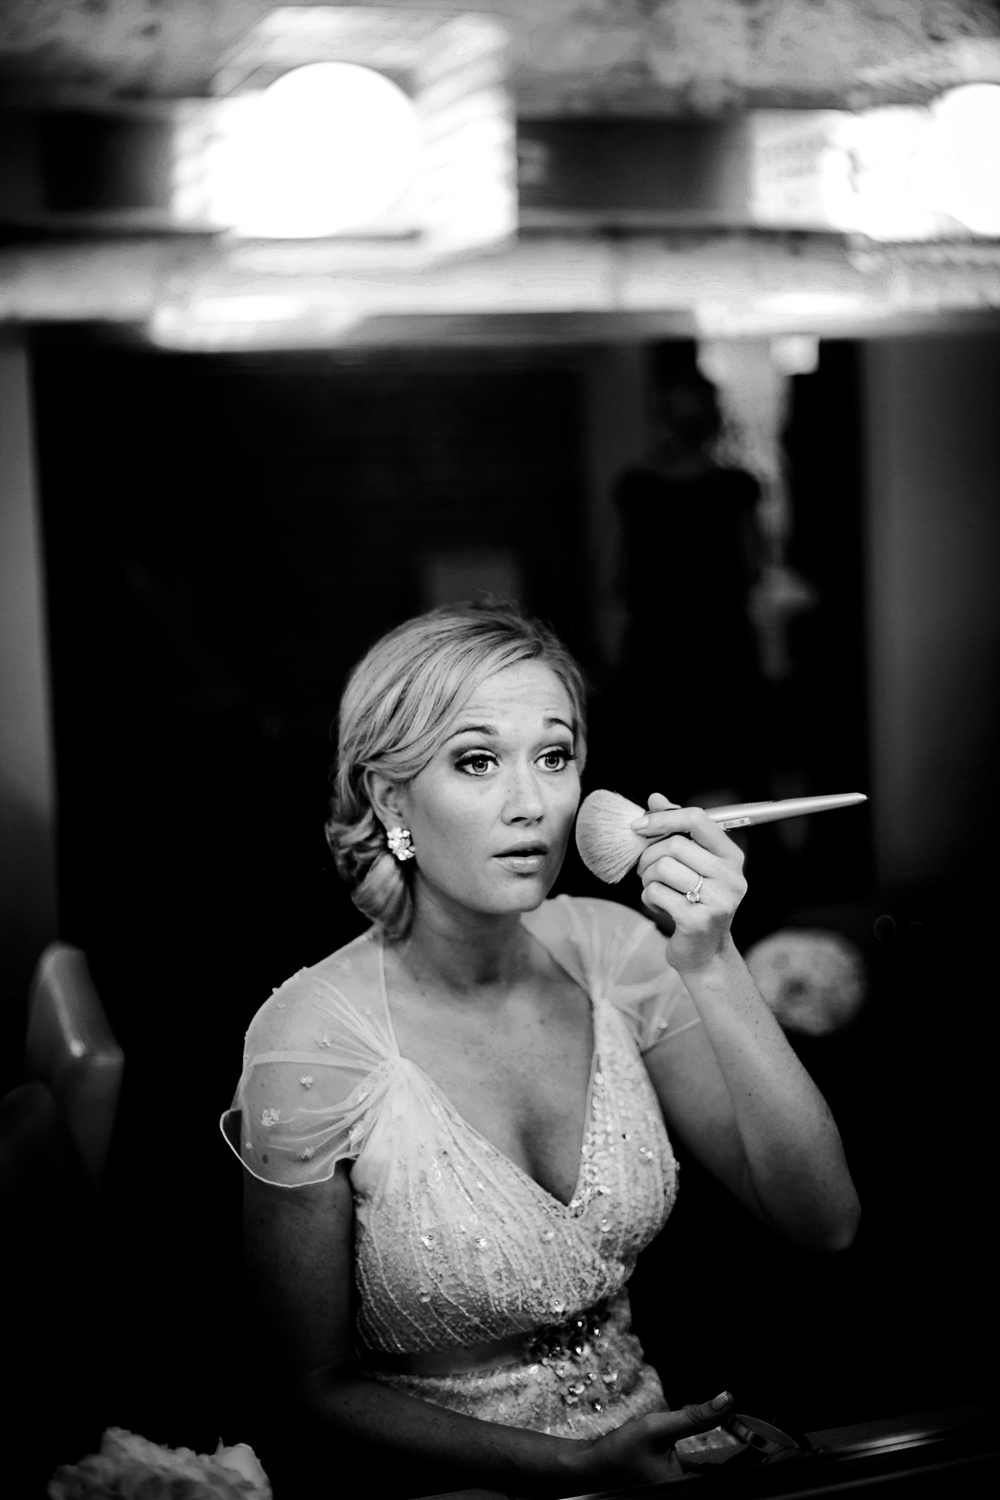 clewell minneapolis wedding photographer-271529614138979.jpg